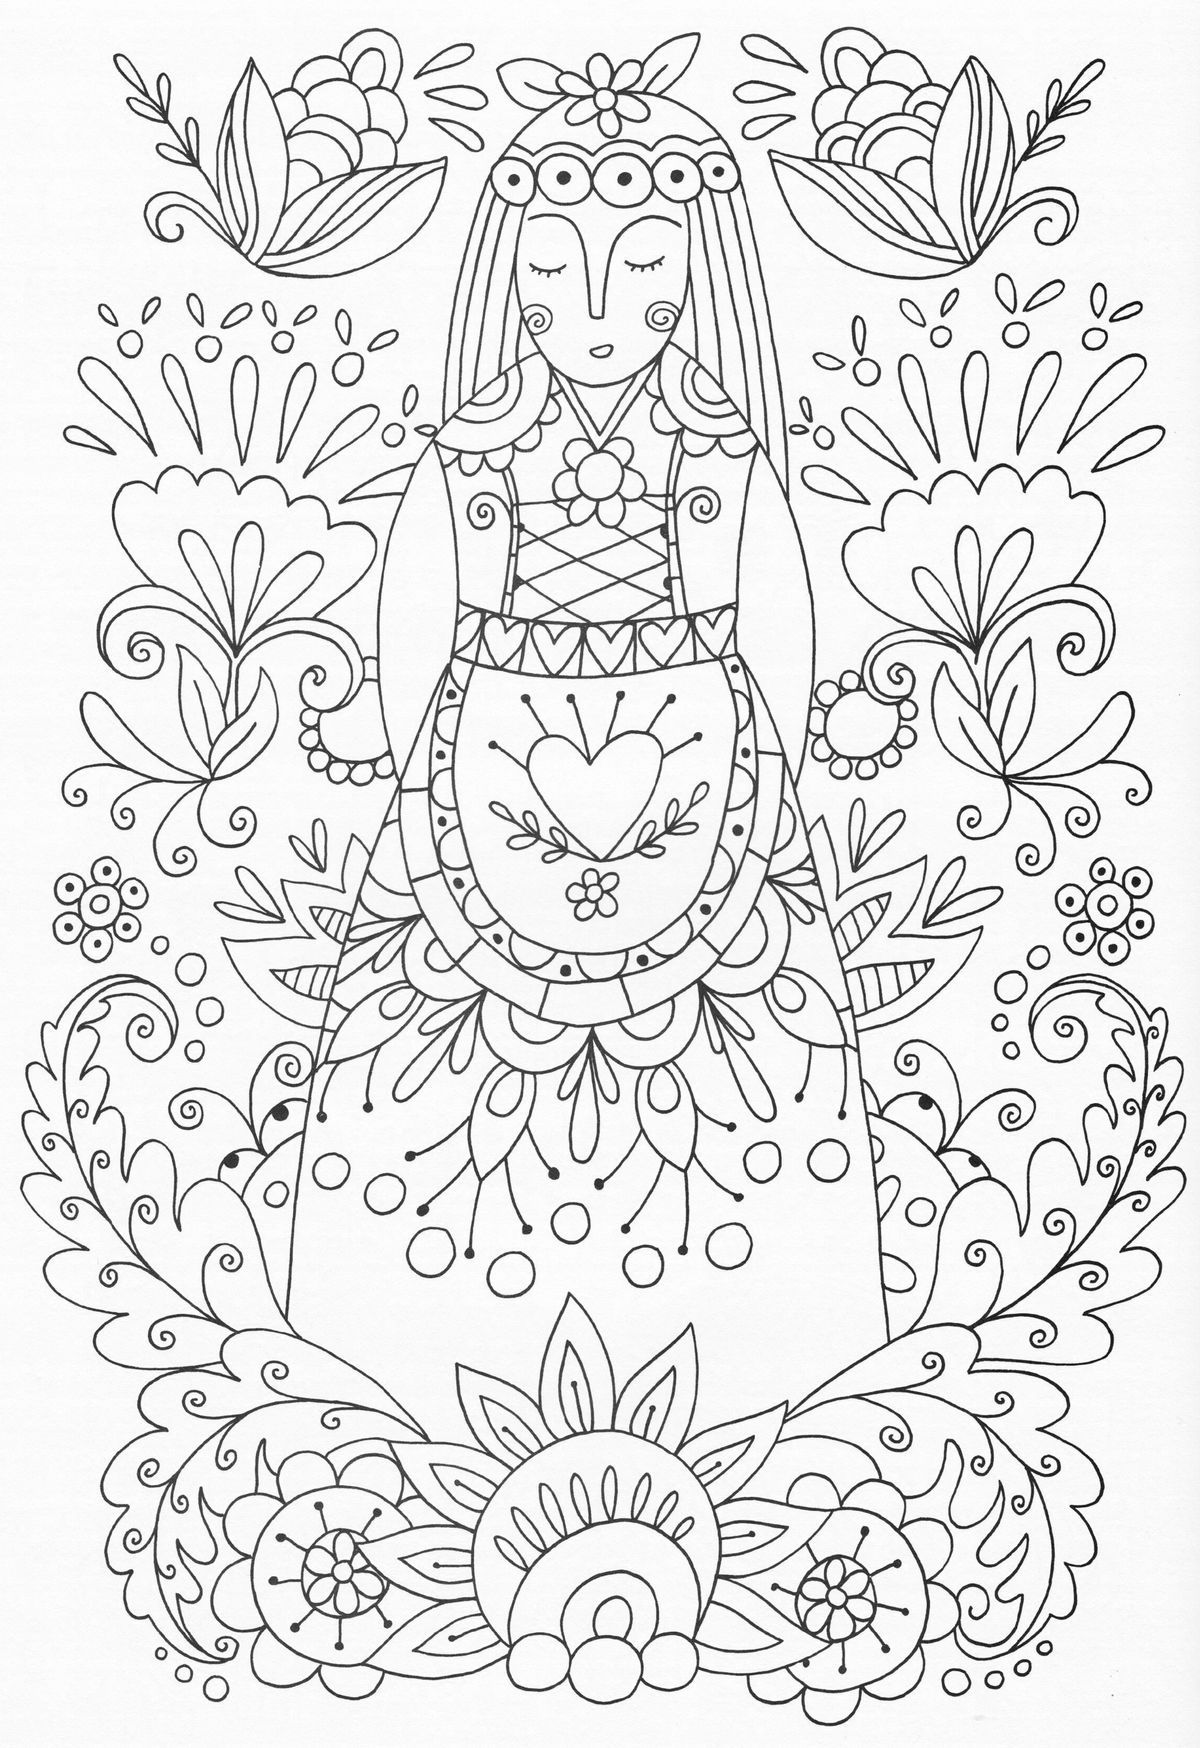 F5da0fa592c5d5d965f25d795b7c93dd Jpg 1 200 1 748 Piksel Scandinavian Embroidery Coloring Pages Folk Embroidery